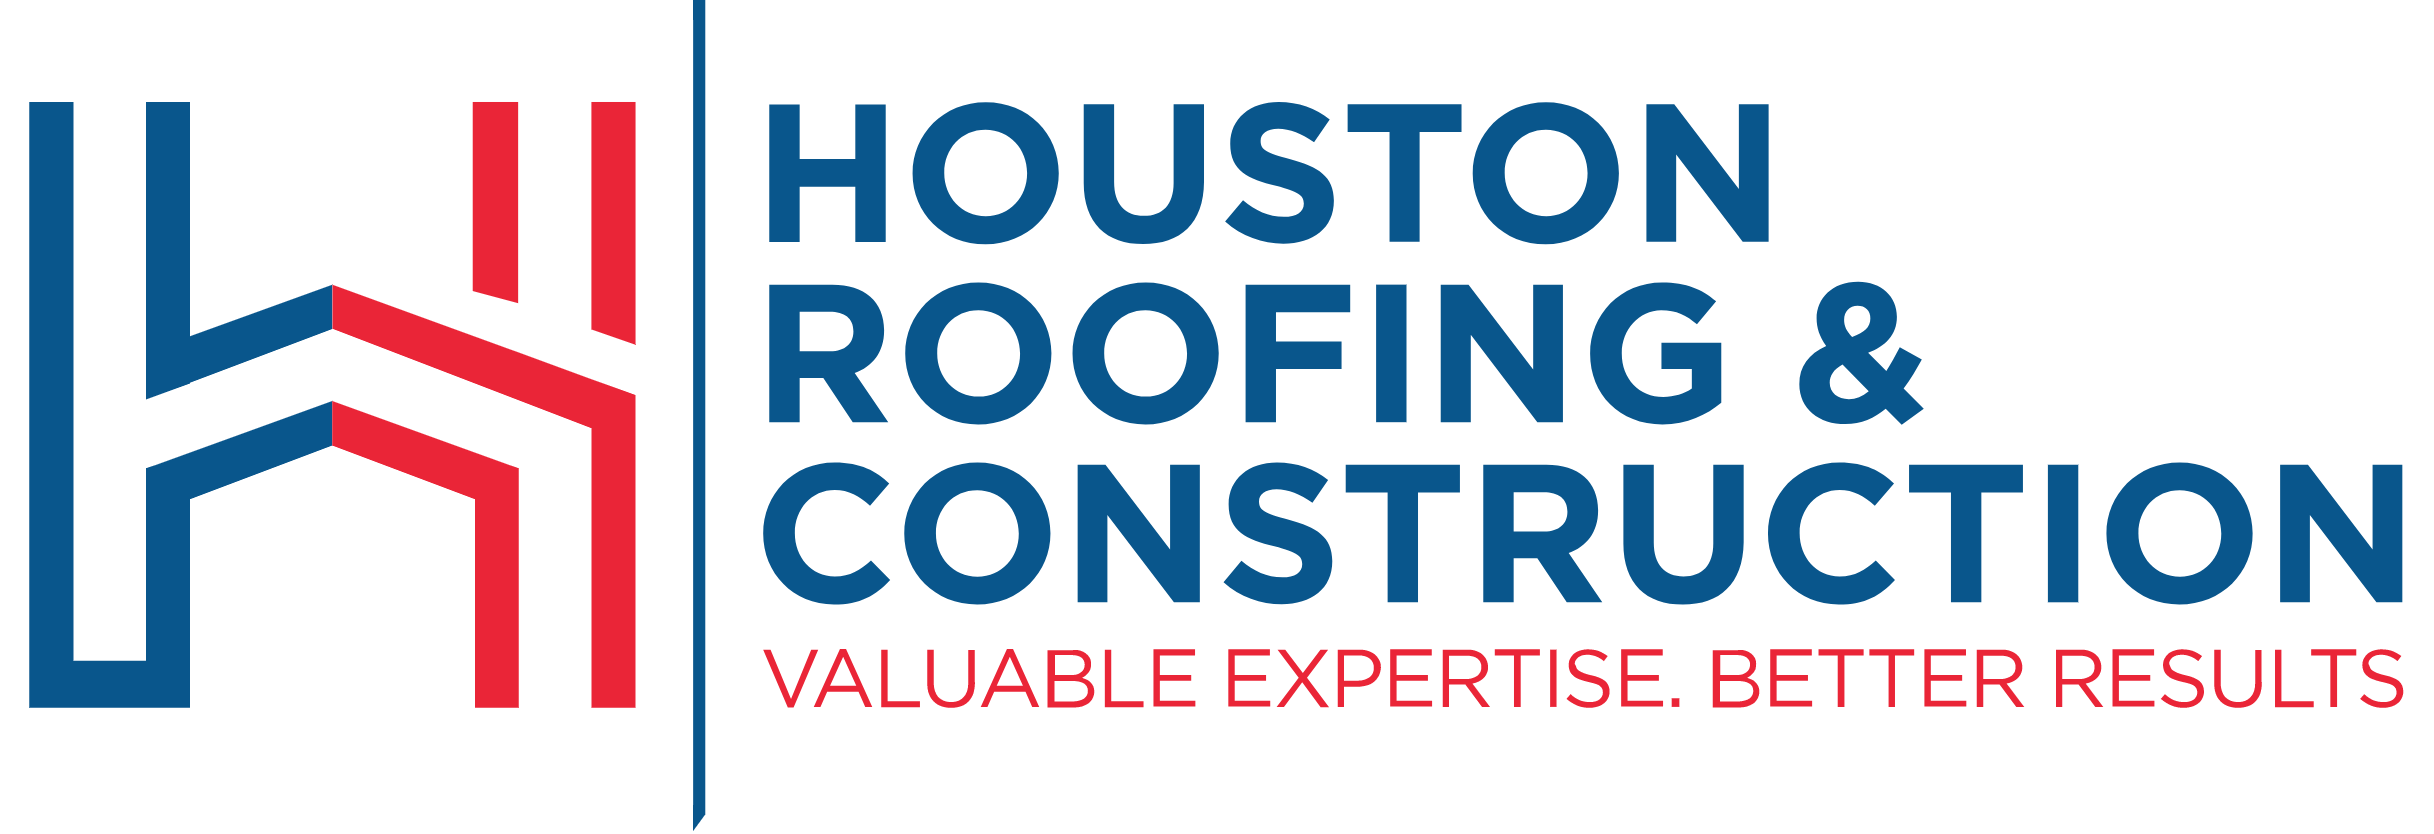 Houston S Top Roofers For New Construction Houston Roofing